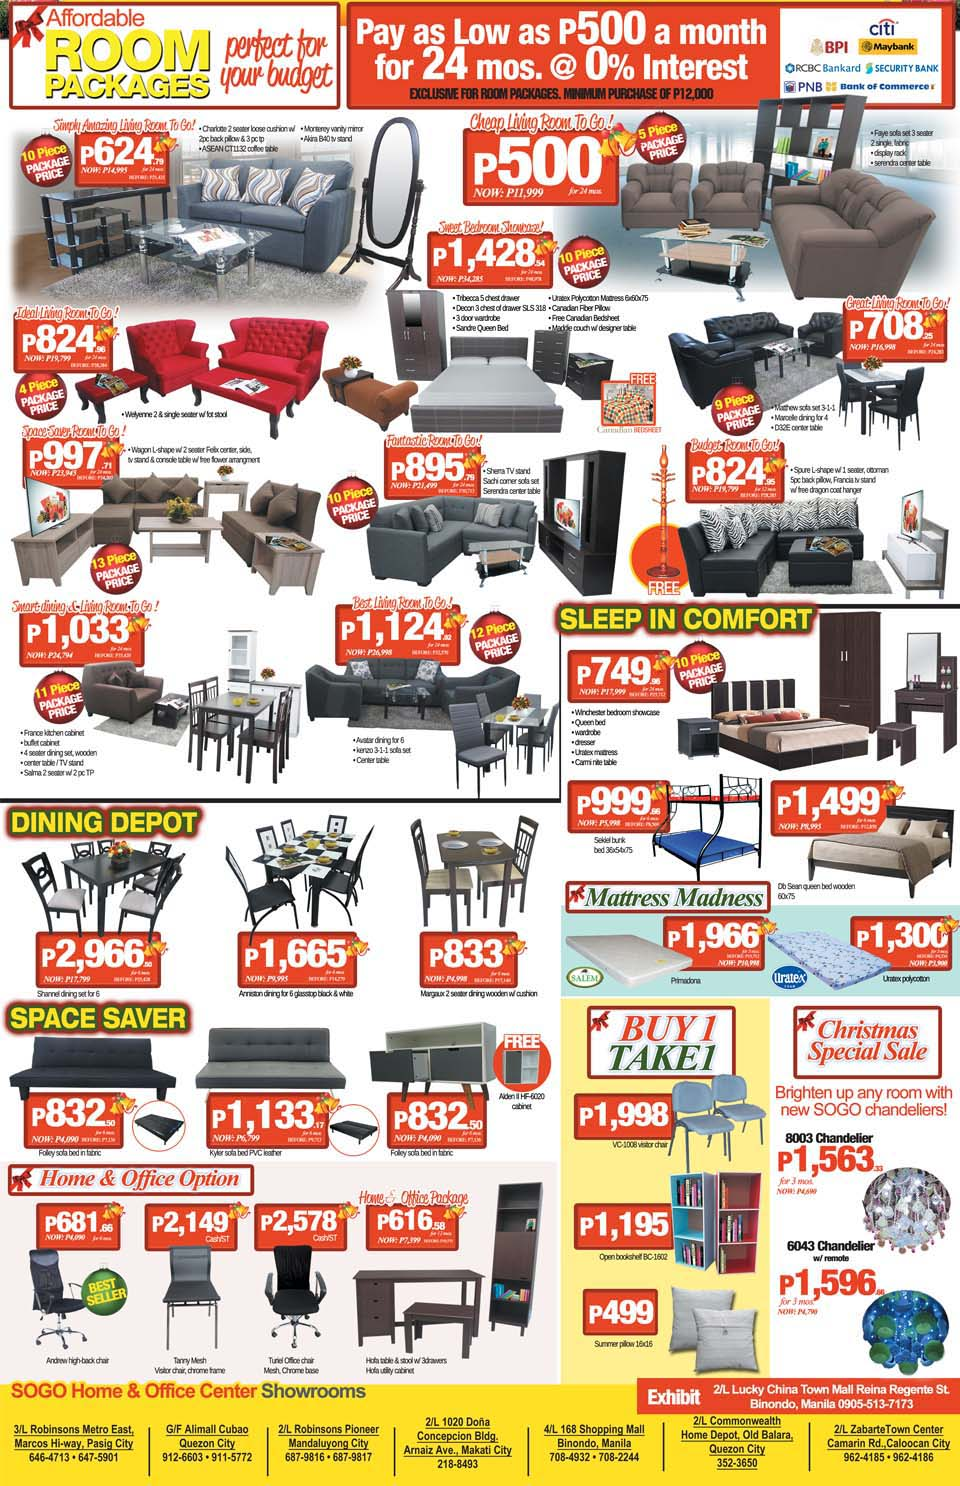 Sogo Home Office Center Perfect Holiday Sale Ednything